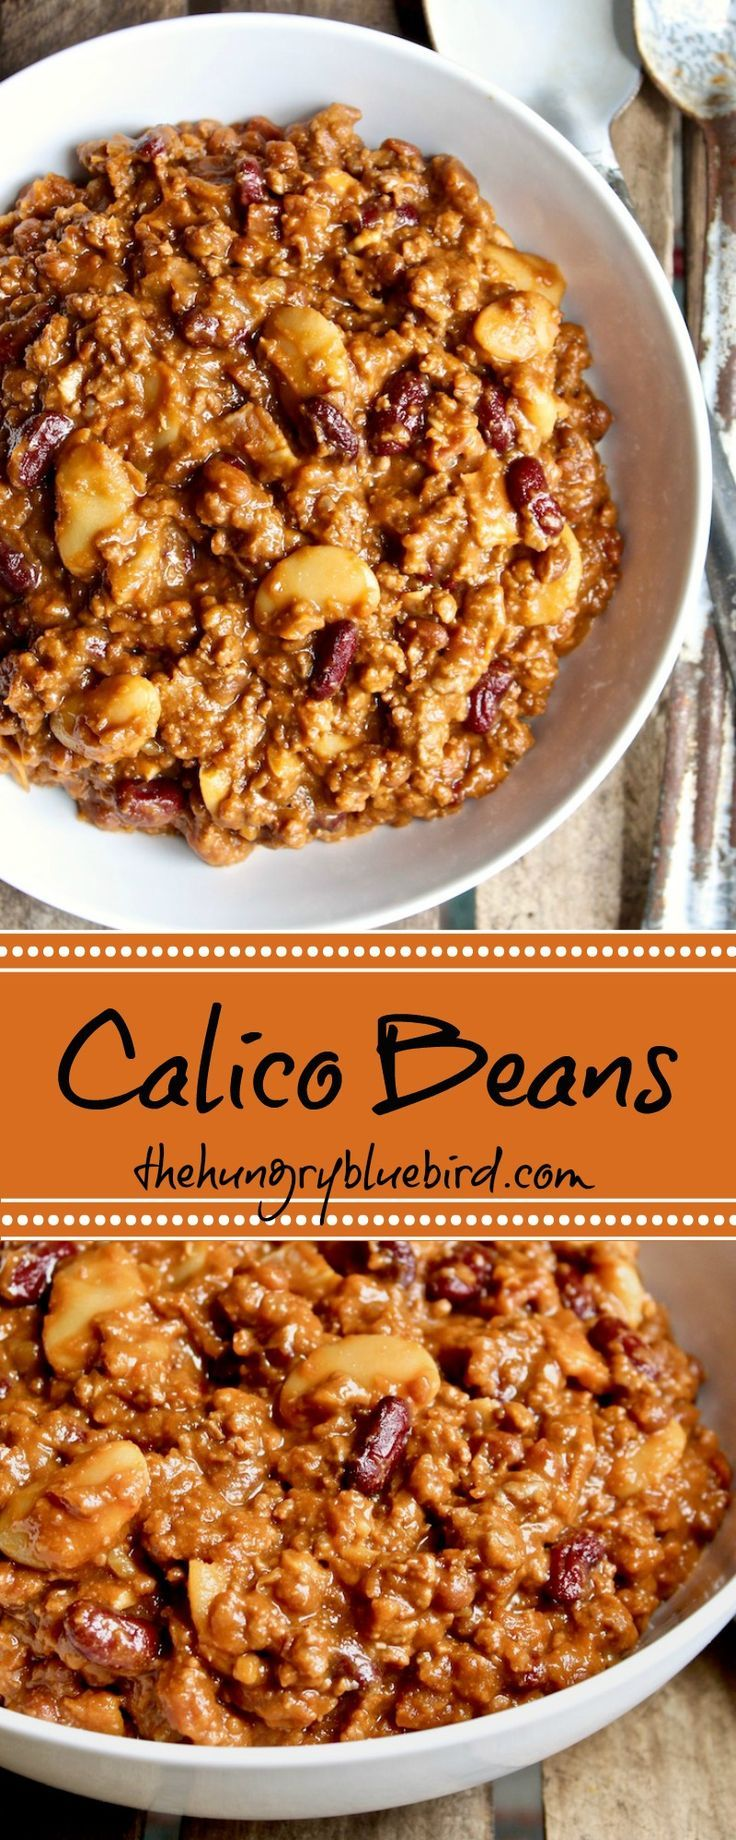 Hearty baked beans side dish with 3 kinds of beans, ground beef and bacon, perfect for a potluck or BBQ.